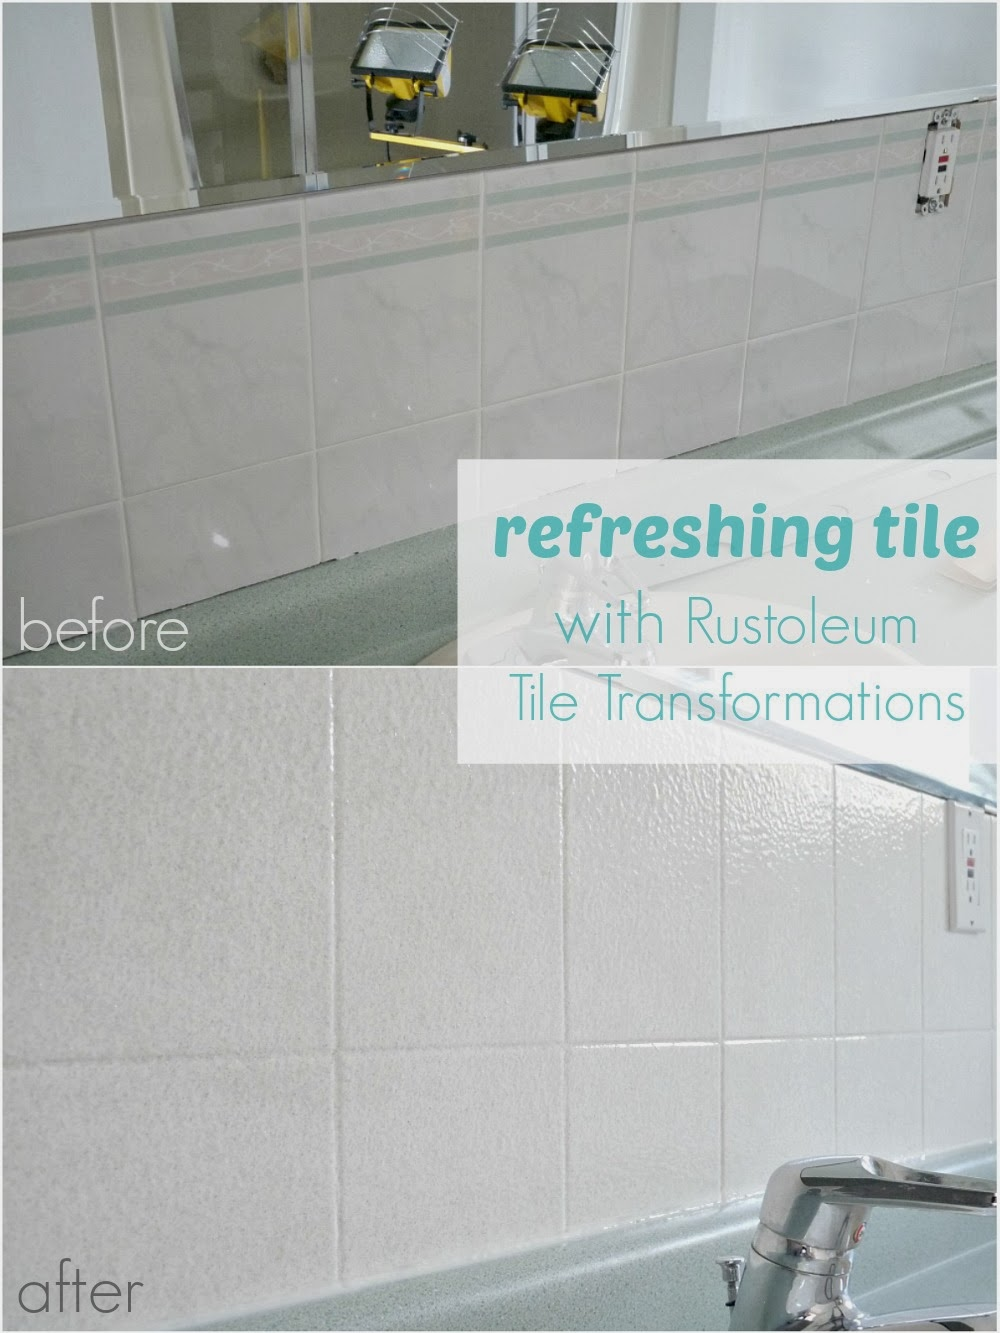 How to refinish ceramic tile